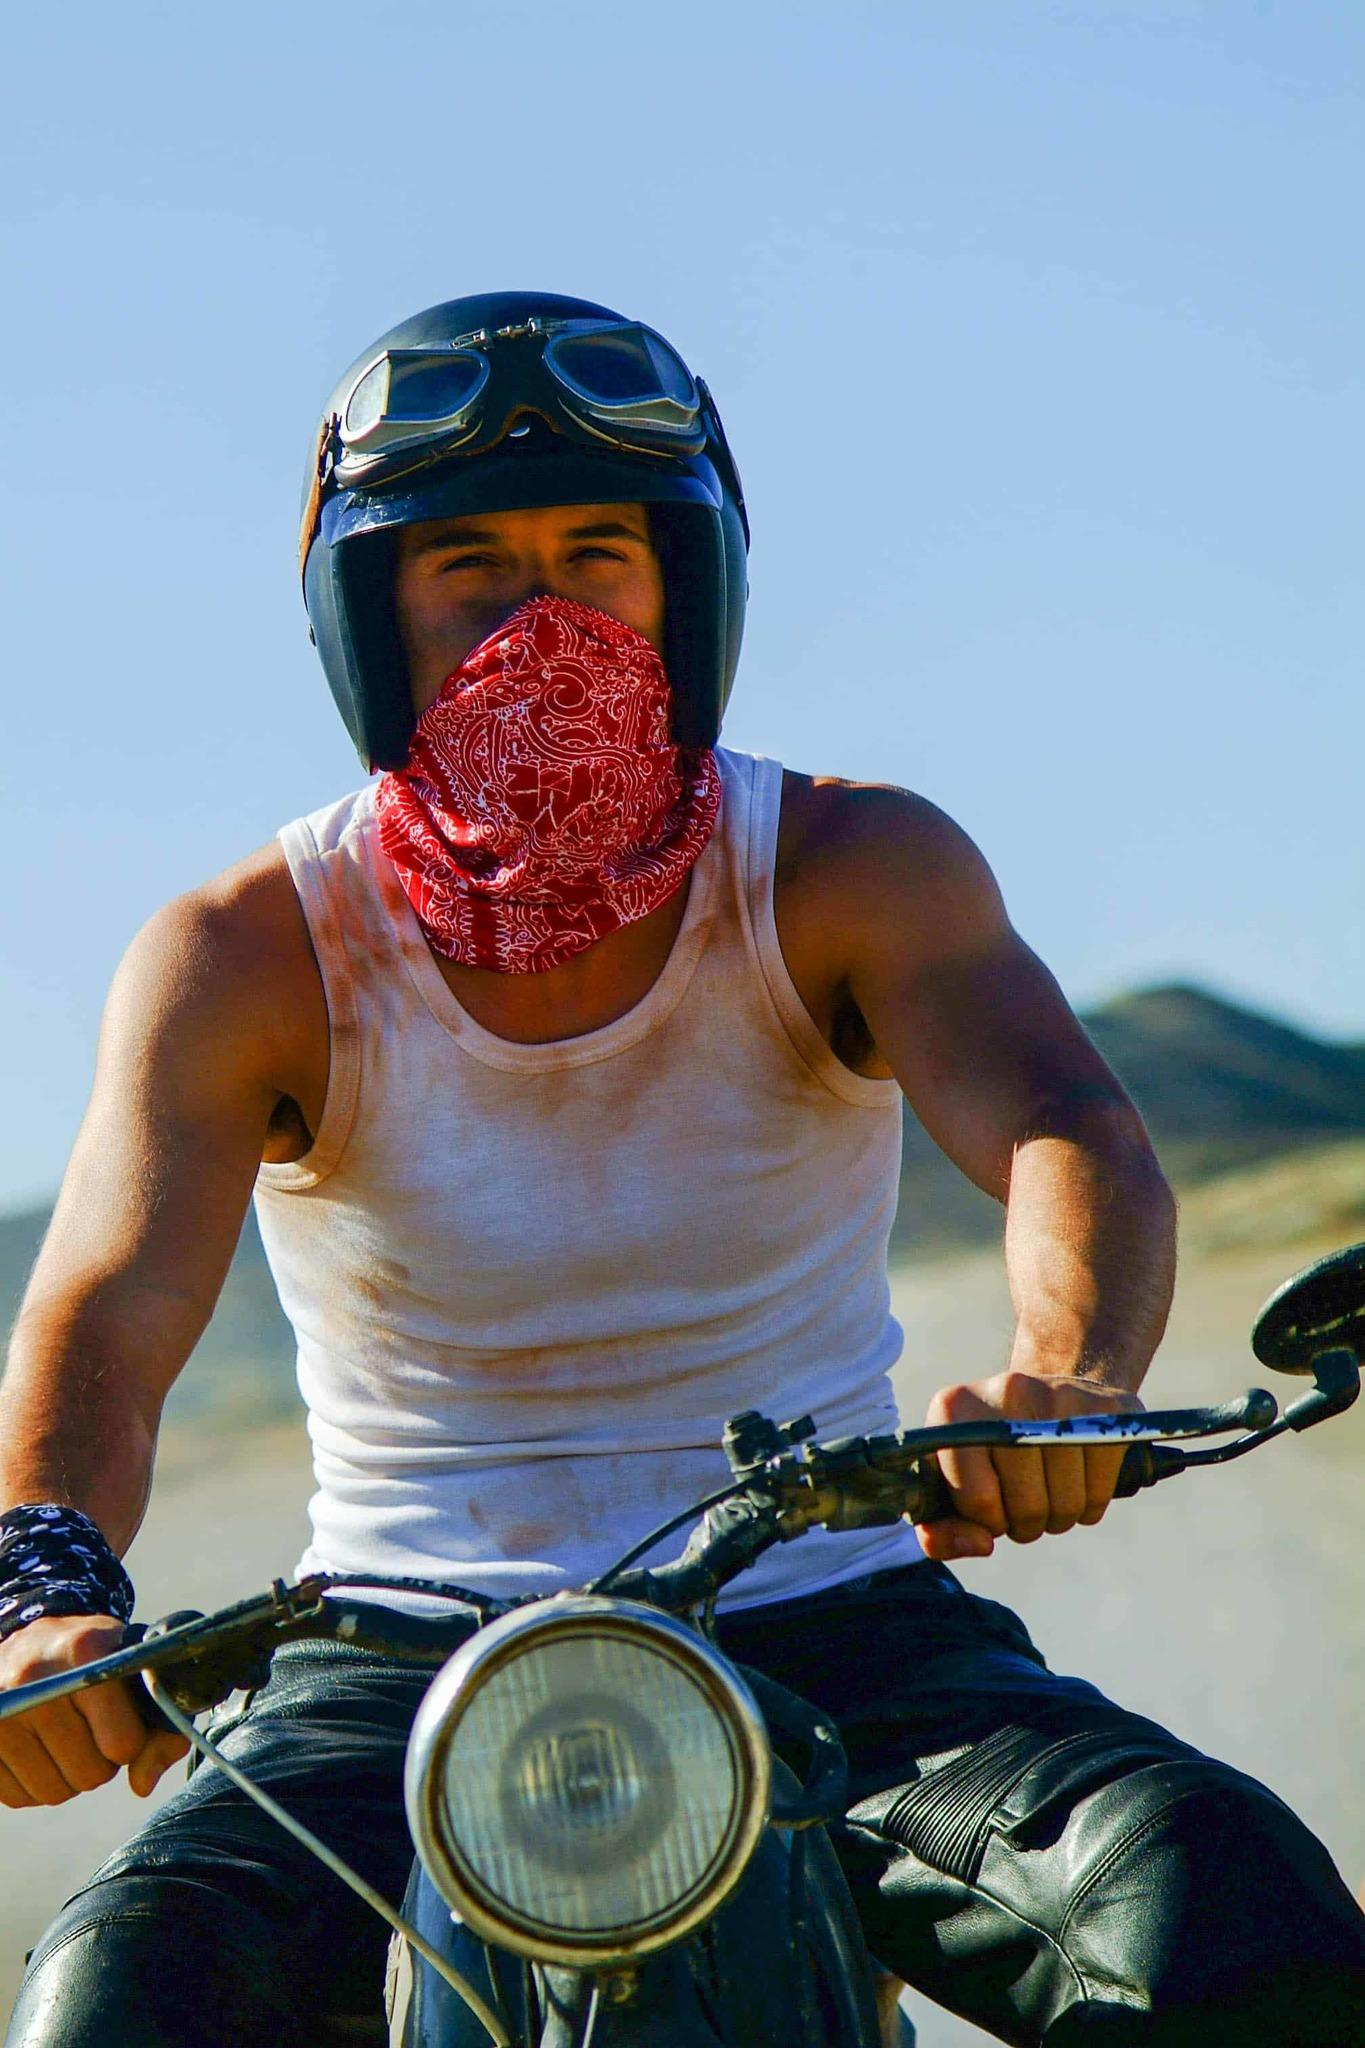 A frontal shot portrait photo of a man on a vintage motorbike. The man is wearing a leather bike trouser and a white singlet. Has a one High UV Buff® as wristband on and one High UV Buff® as face mask. He is also wearing an open face motorbike helmet and vintage motorcycle goggles over the helmet. The background looks hot & dusty. Source: buff.eu Copyright: Distributed for the promotion of the High UV Buff® in the motorcycling